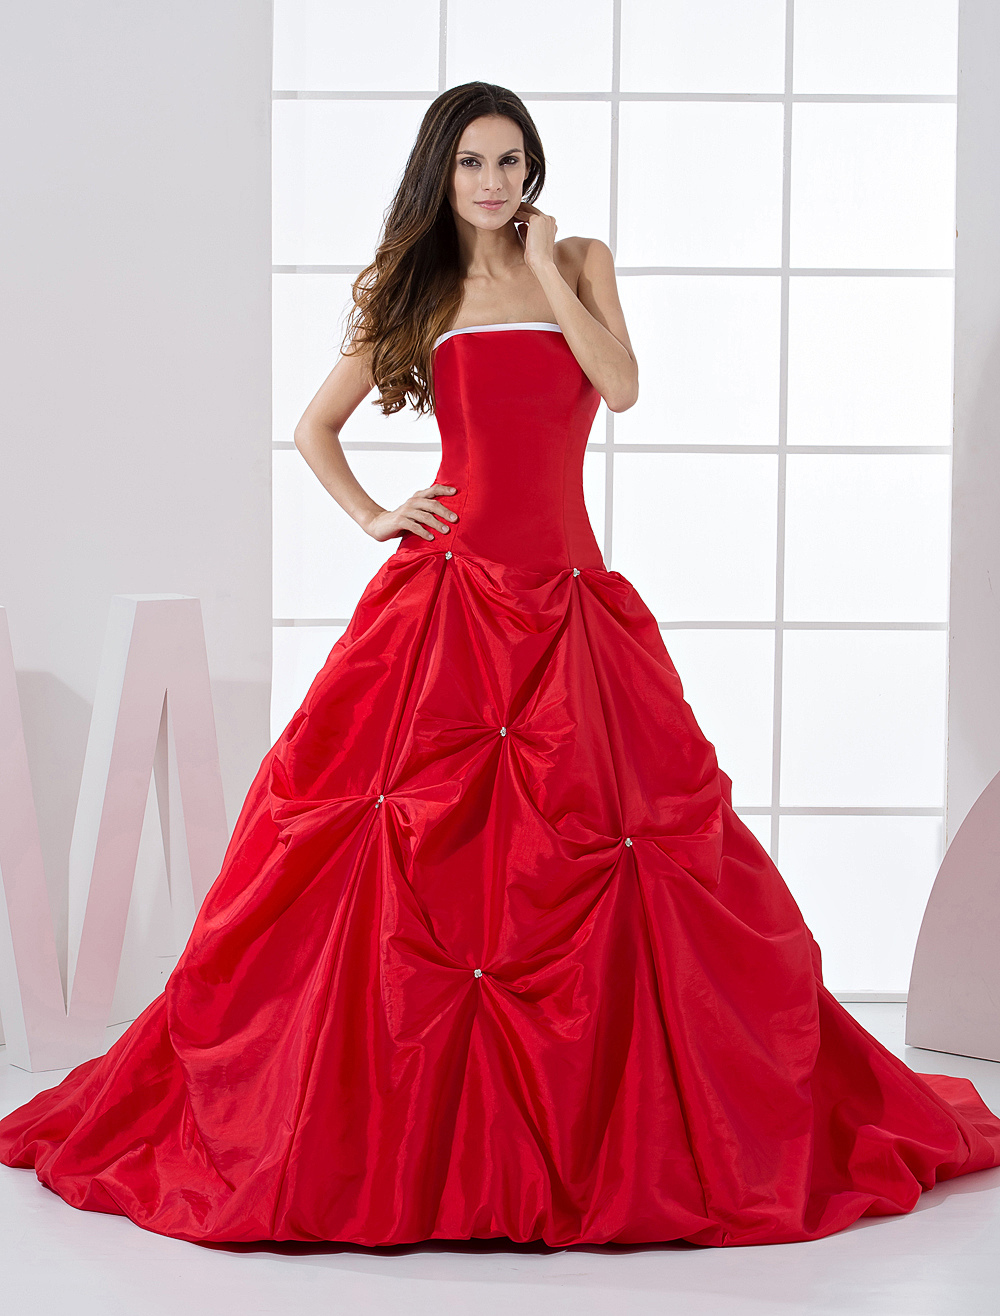 Red Ball Gown Strapless Quinceanera Dress (Wedding Quinceanera Dresses) photo